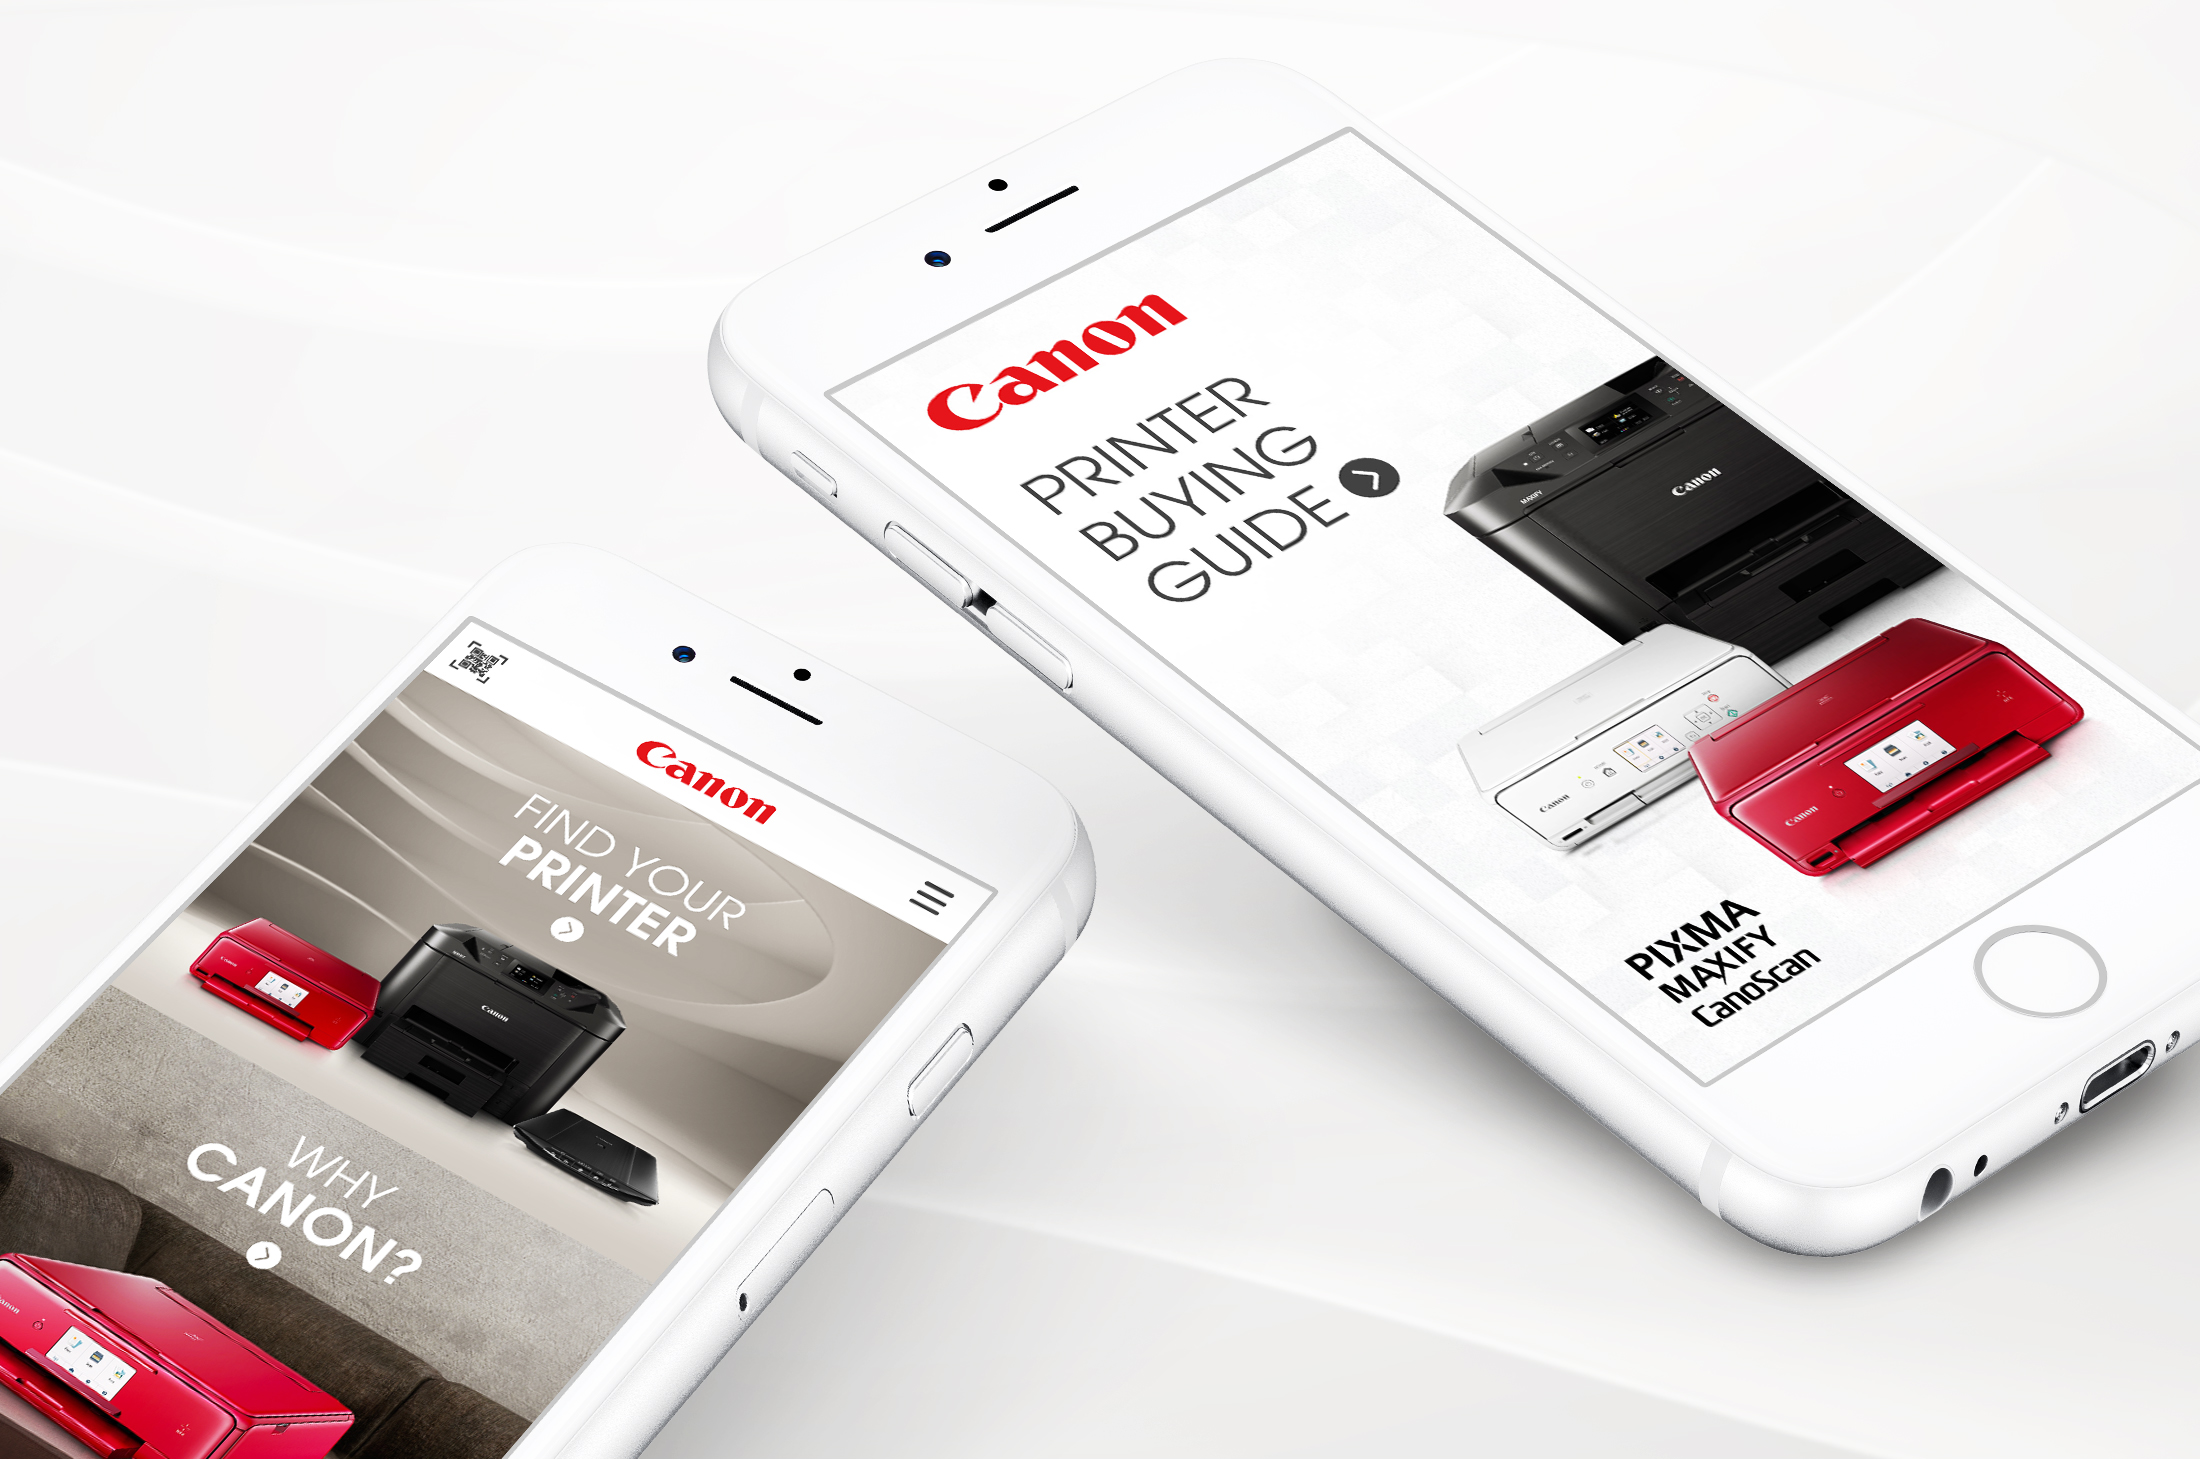 Canon Printer Buying Guide App